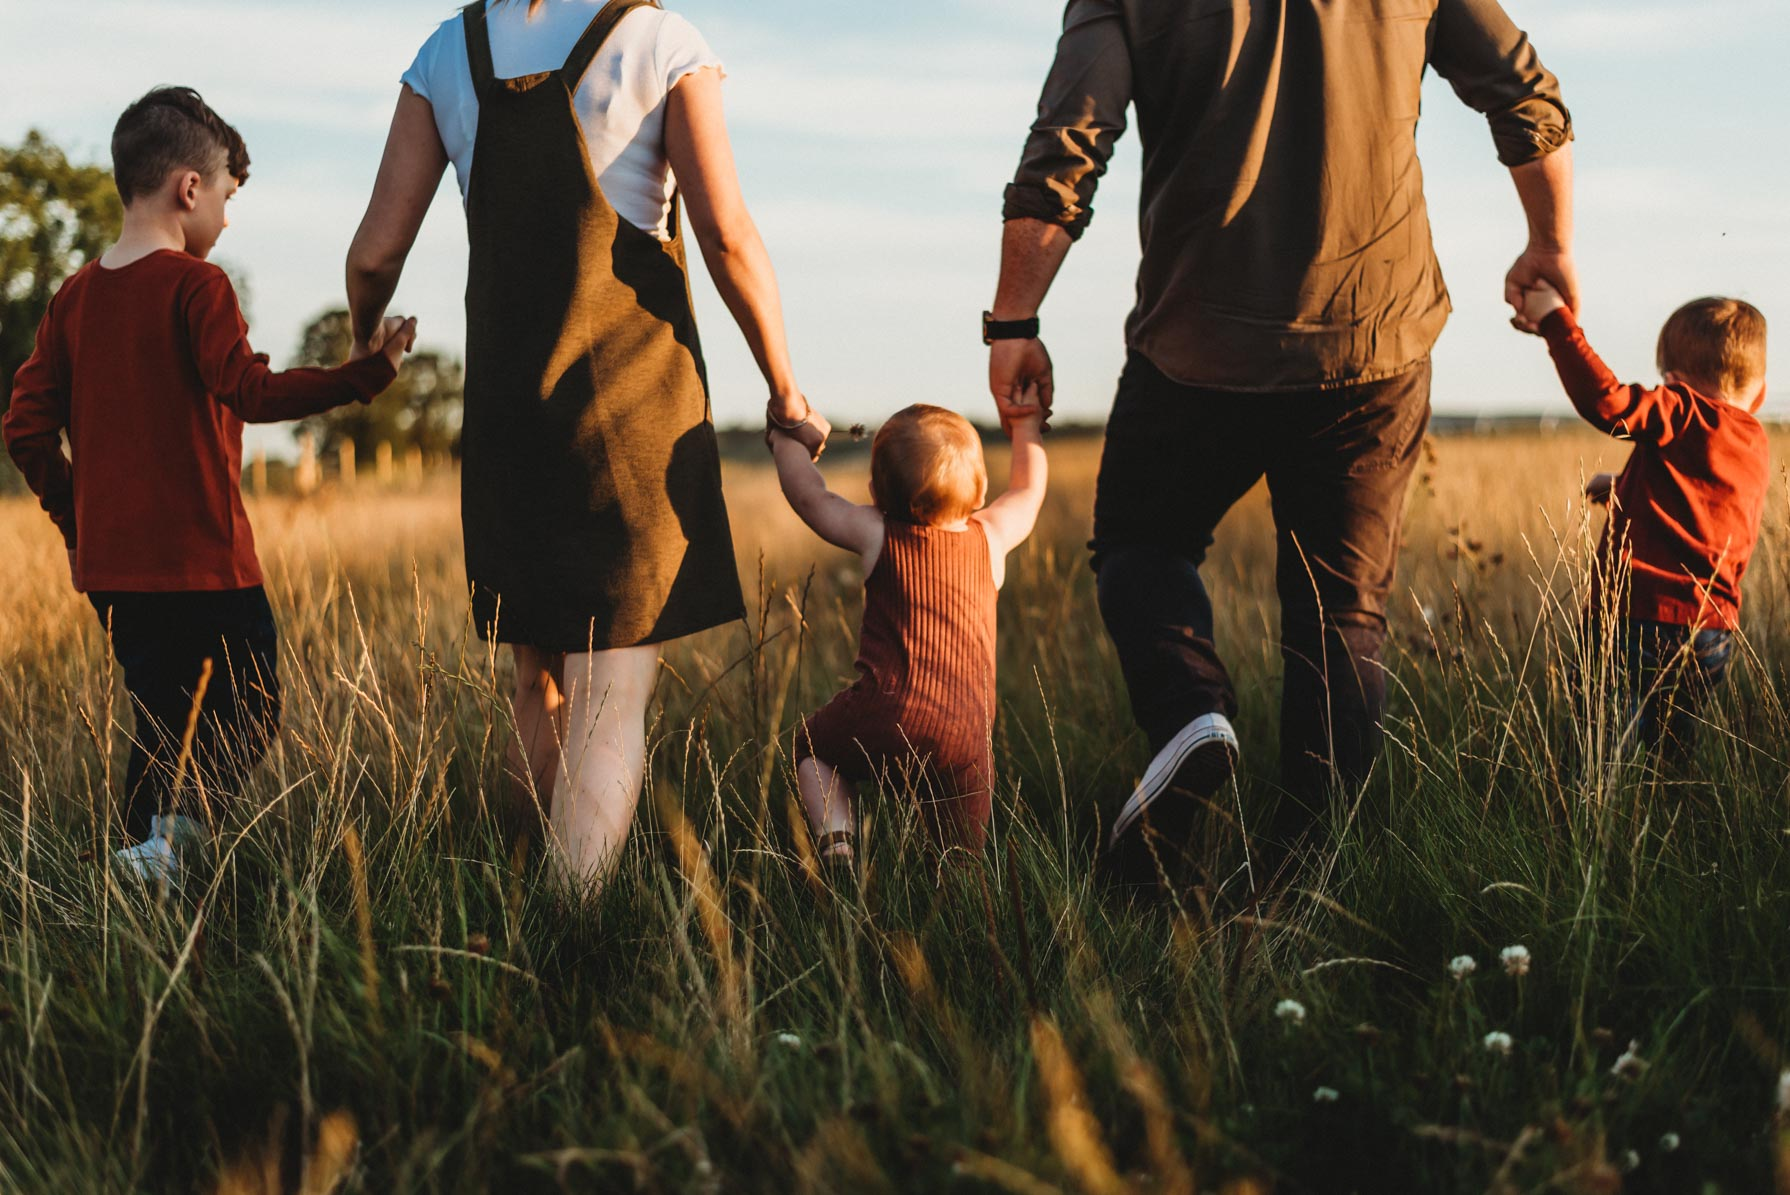 family of 5 walking hand in hand during sunset